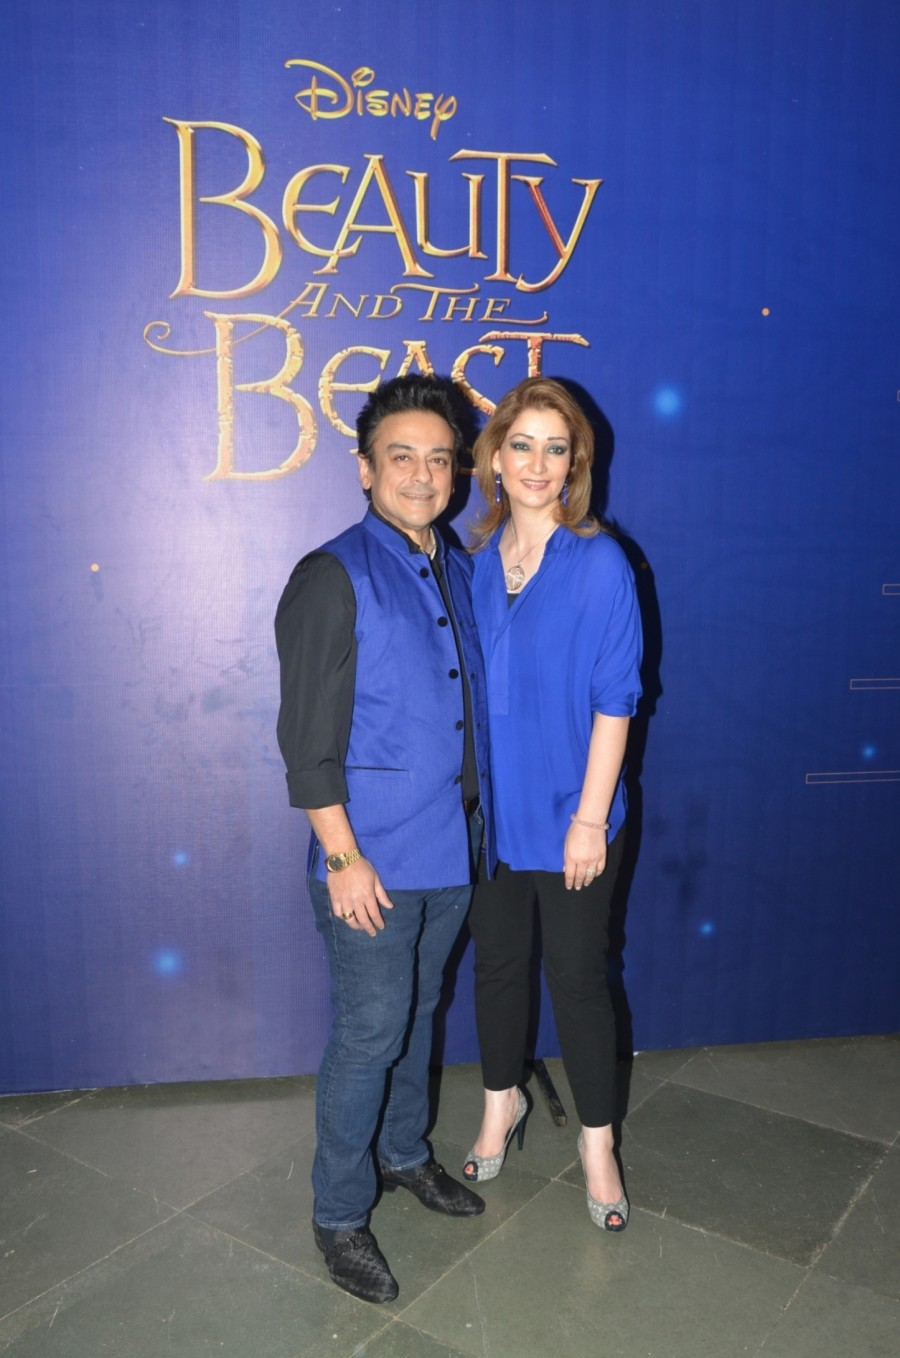 Disney India,Disney India's Broadway style musical Beauty and the Beast' inaugural Show,Beauty and the Beast,Beauty and the Beast inaugural Show,Vikranth Pawar,Lesle Lewis,Terence Lewis,Varsha Jain,Gavin Miguel,Pallavi Devika,Suzanne D'Mell